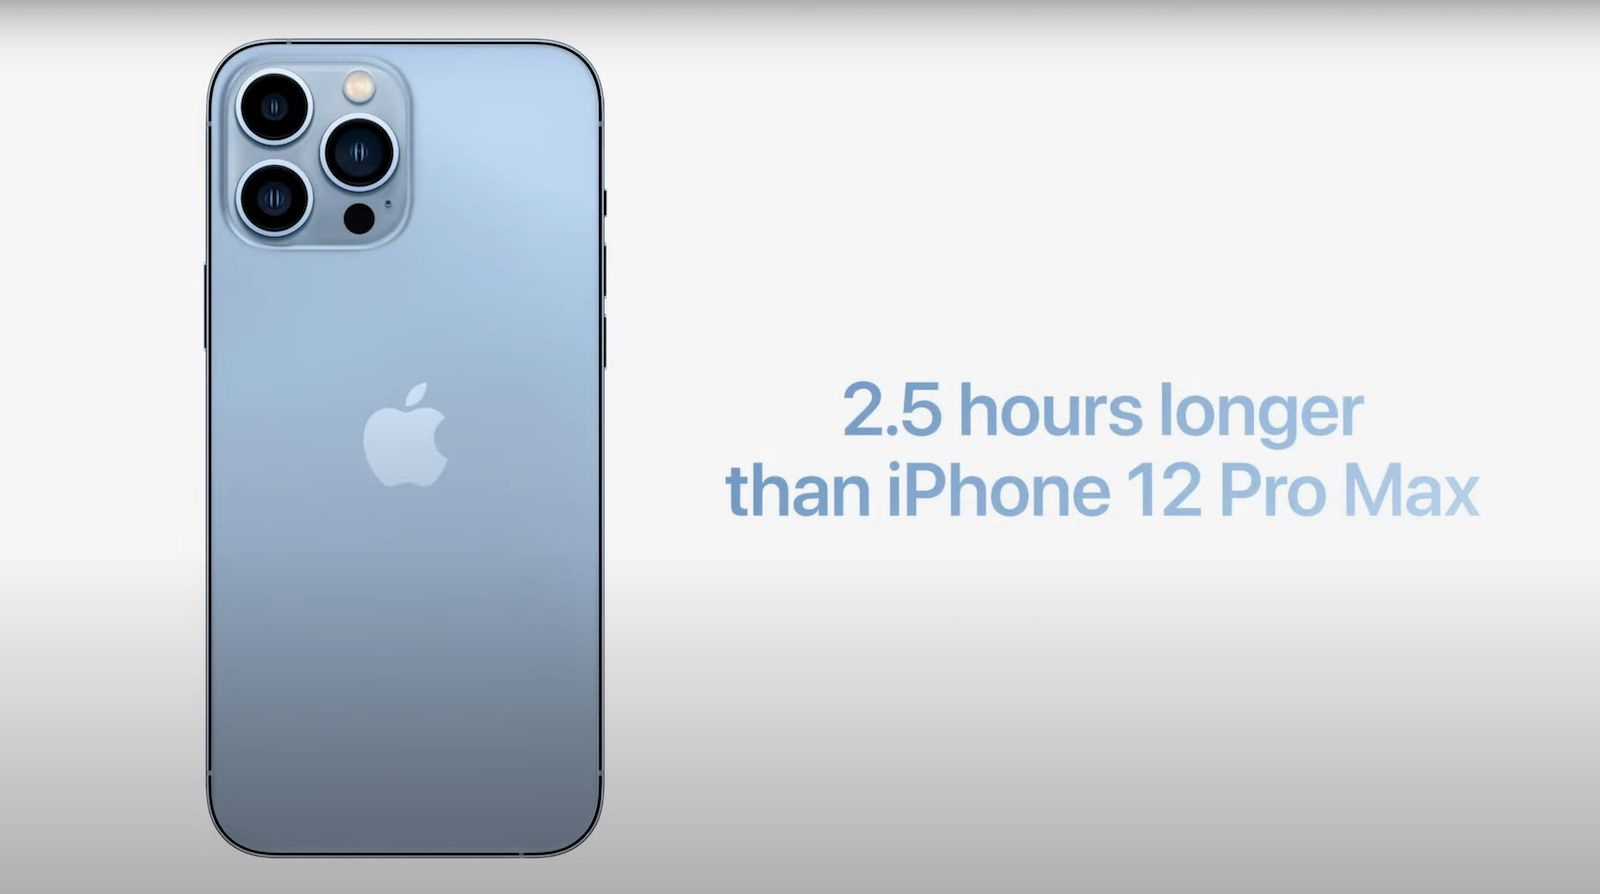 iPhone 13 Pro Max Gets Nearly 10 Hours of Battery Life in Continuous Usage Test - MacRumors